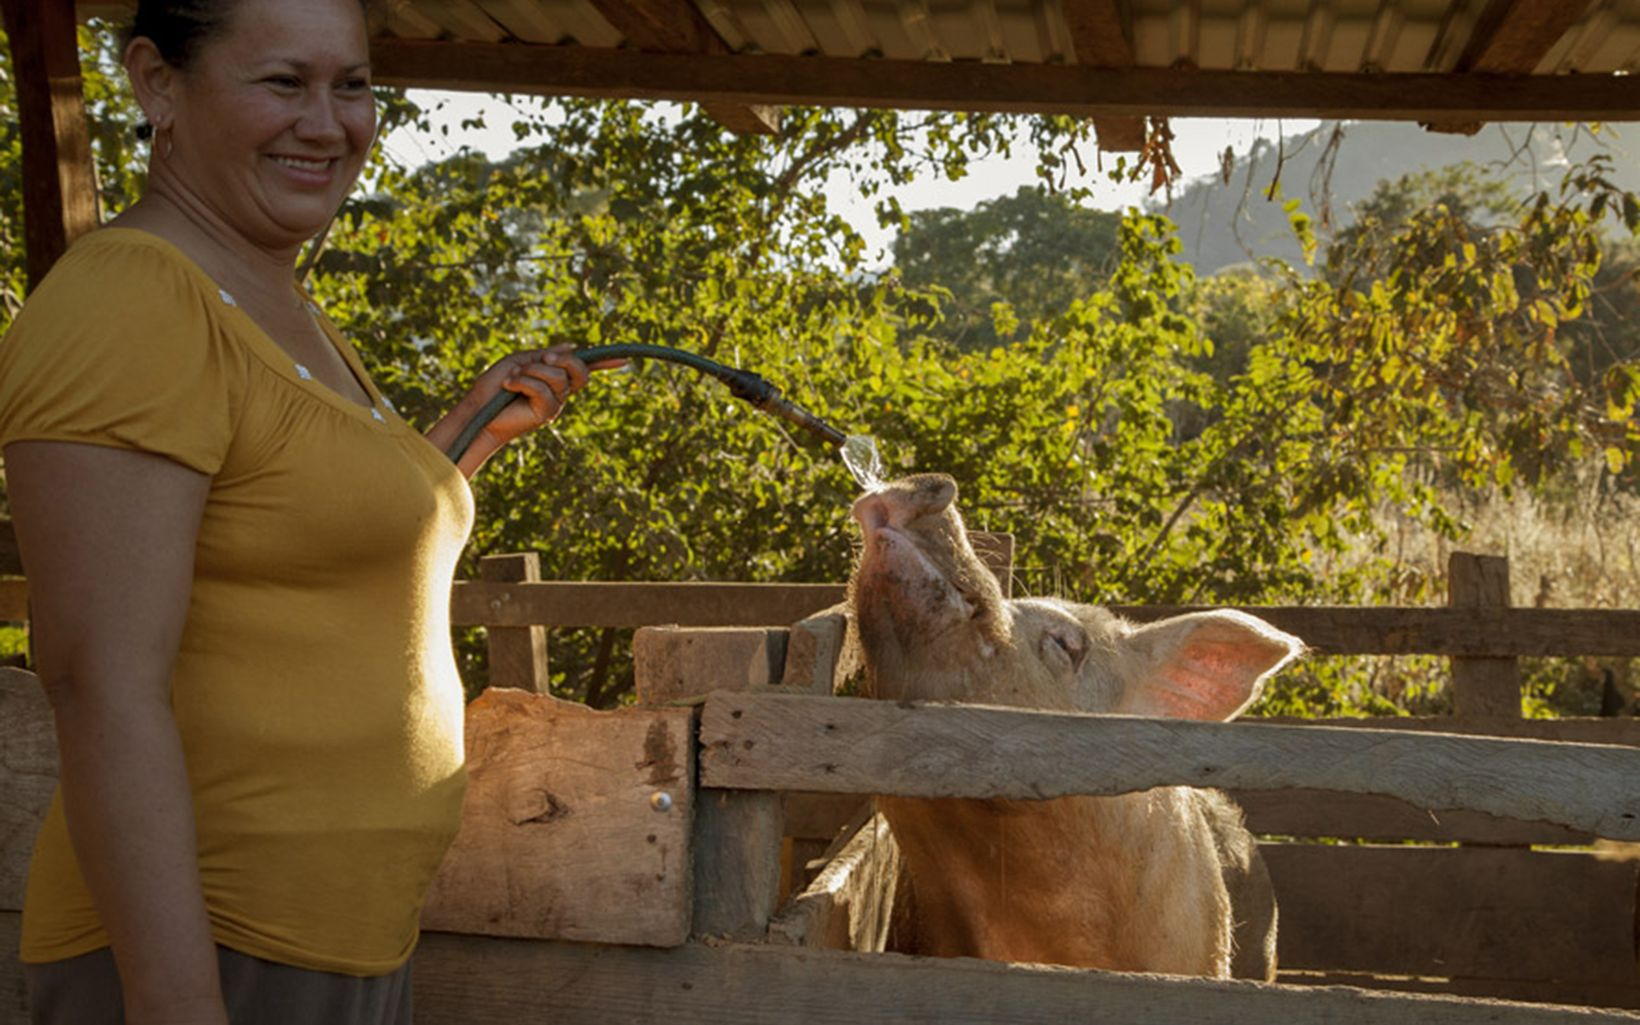 Livestock management is often not an isolated activity, and contributions made by all family members are essential elements to ranching's productive value chain.